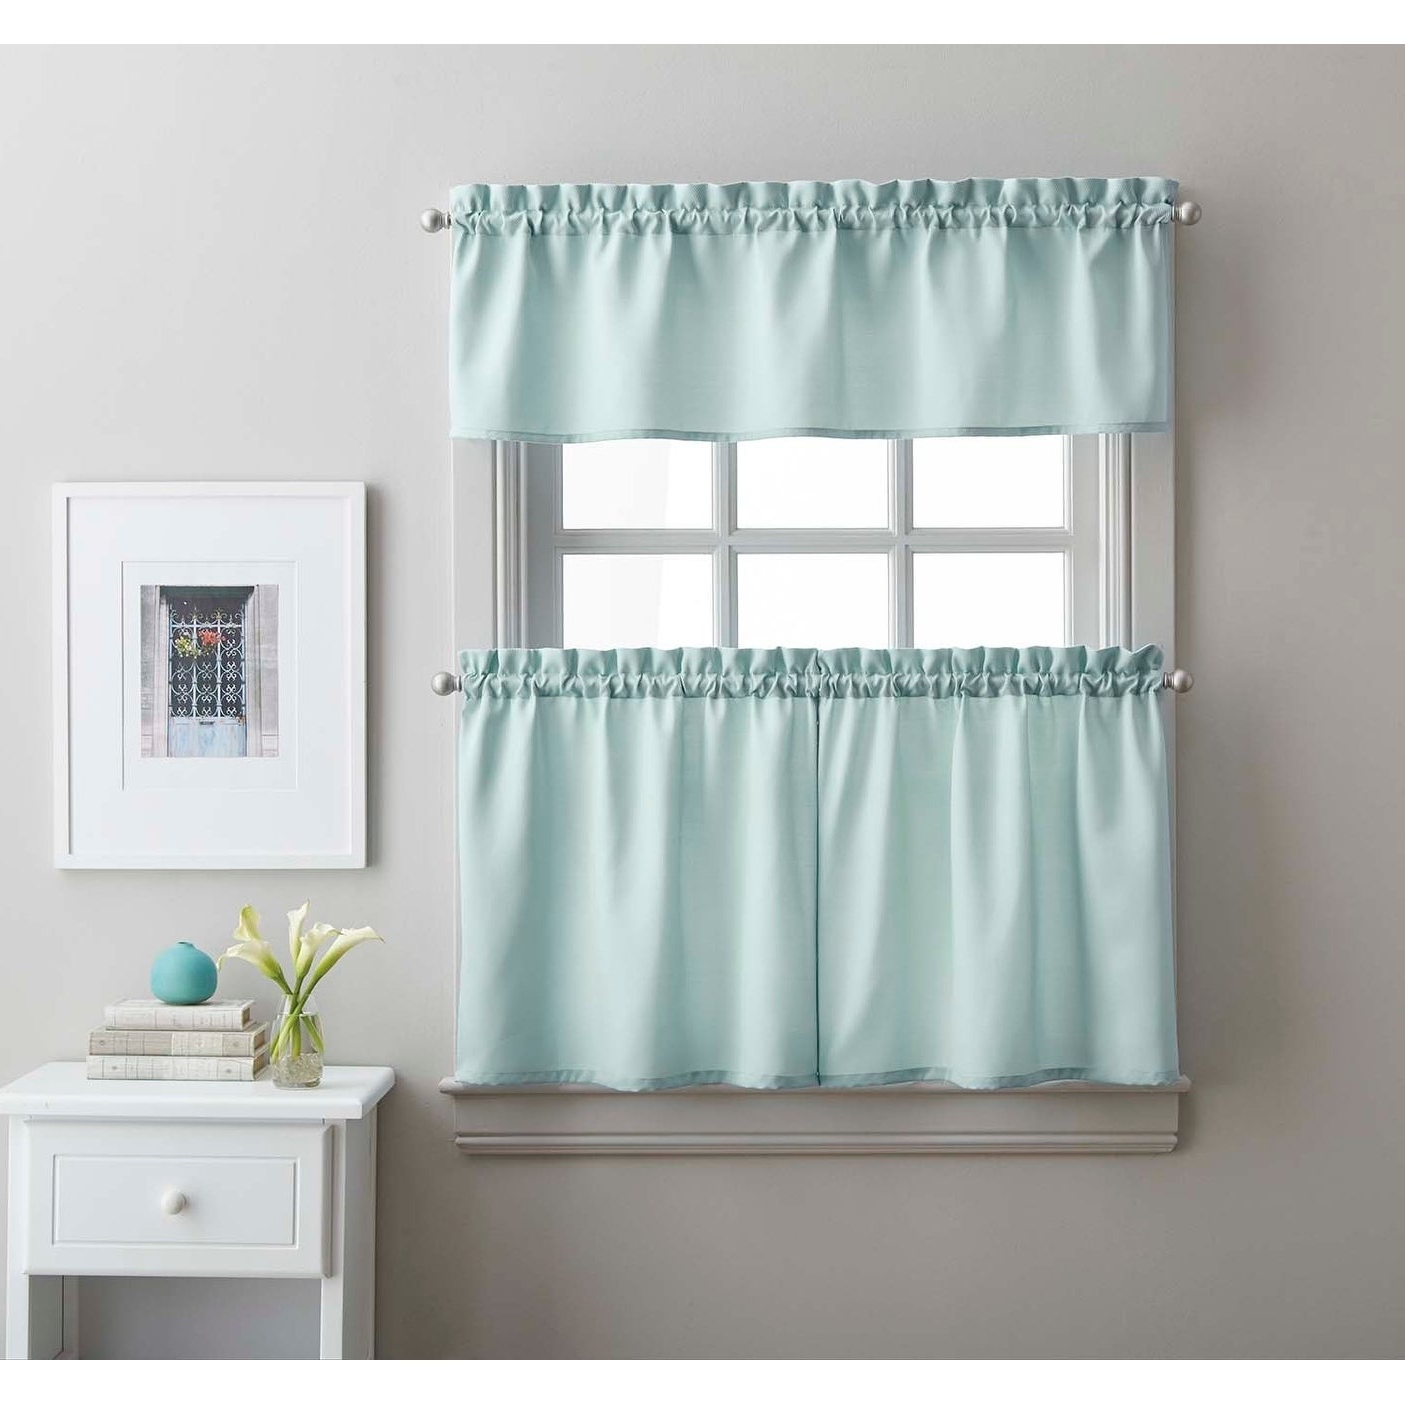 Twill 3 Piece Kitchen Curtain Tier Set Throughout Most Popular Wallace Window Kitchen Curtain Tiers (View 7 of 20)